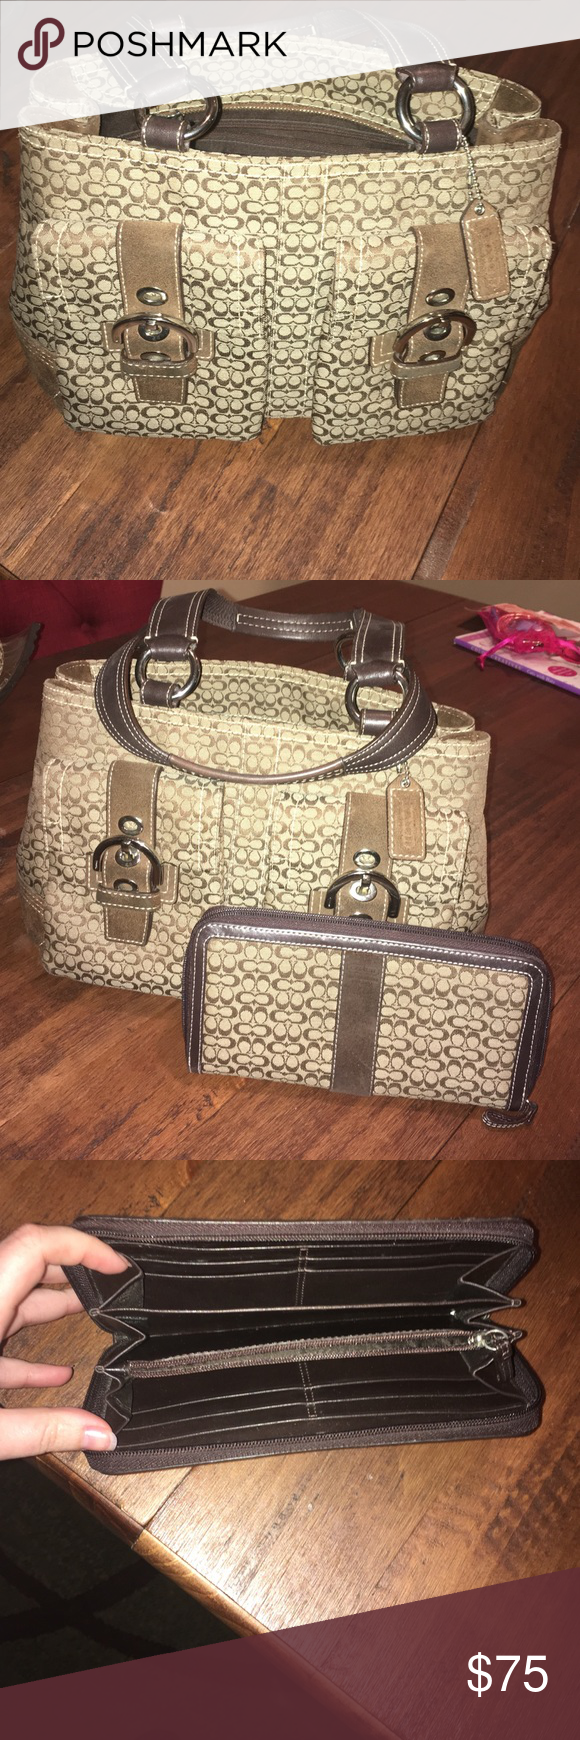 Coach handbag and matching wallet Brown Coach handbag and matching wallet. Both are in good condition with little to no wear. They have brown suede accents on both. Coach Bags Totes